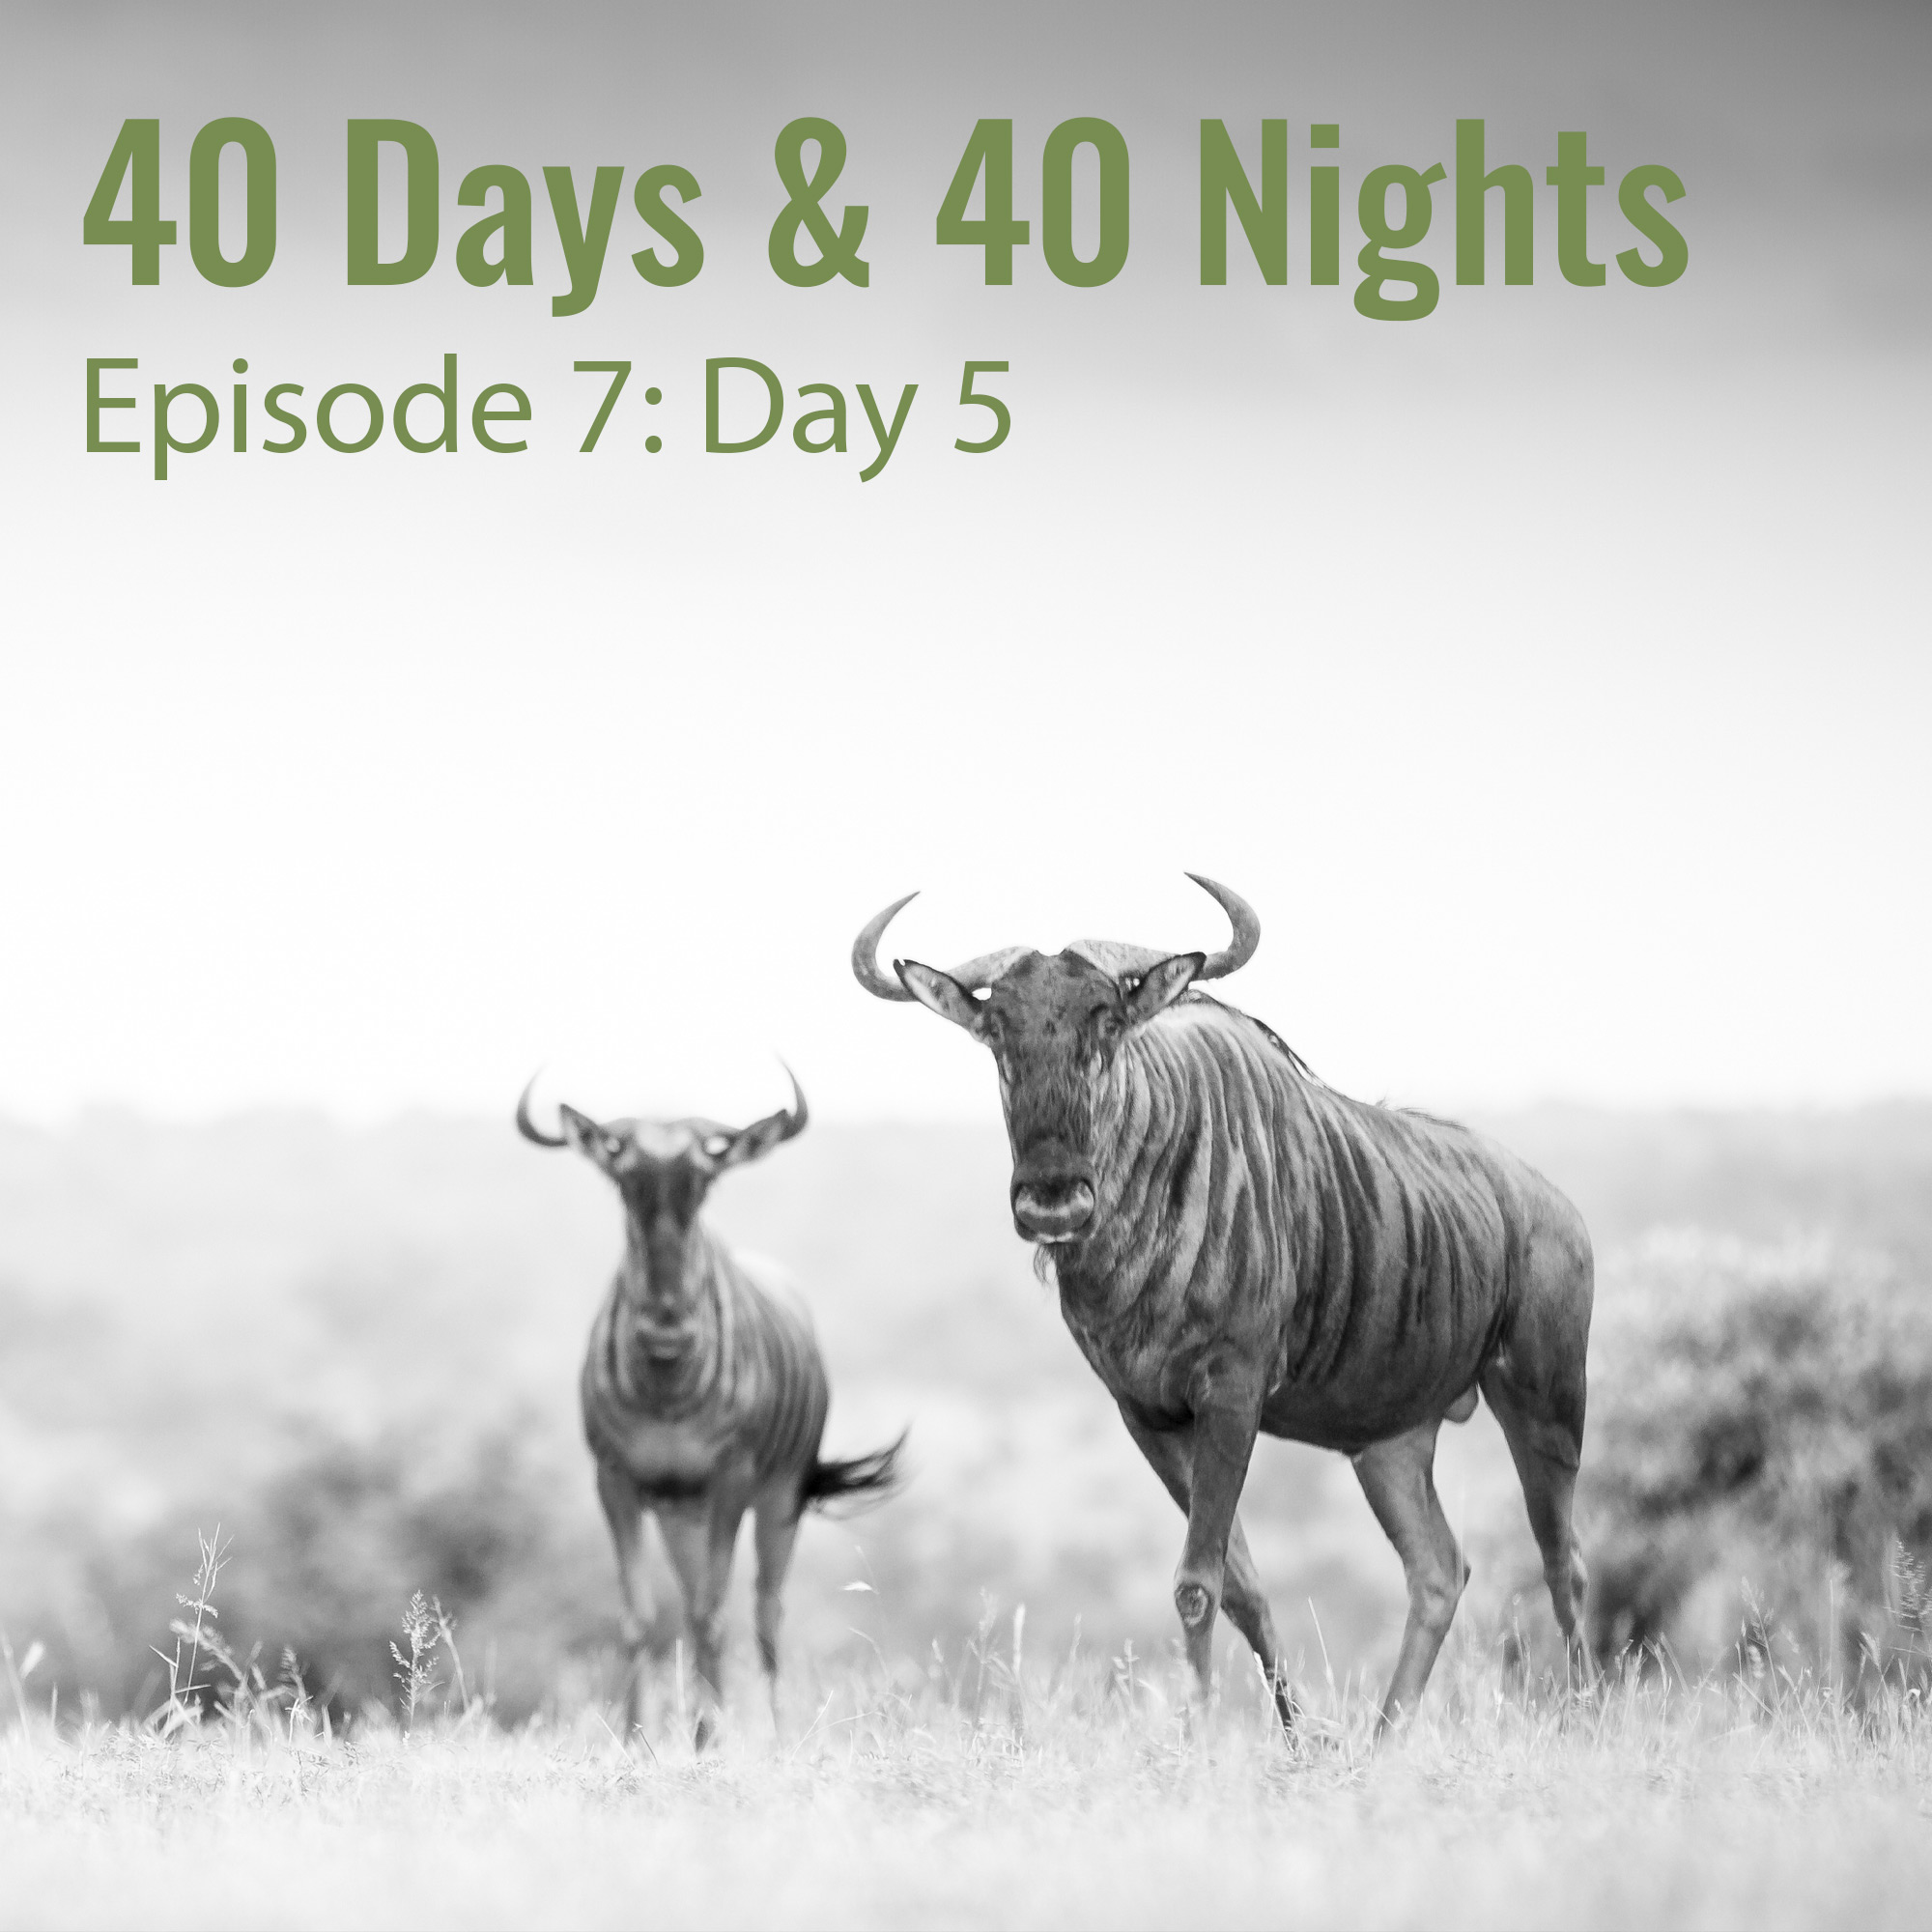 7-Day-5-40 Days and 40 Nights